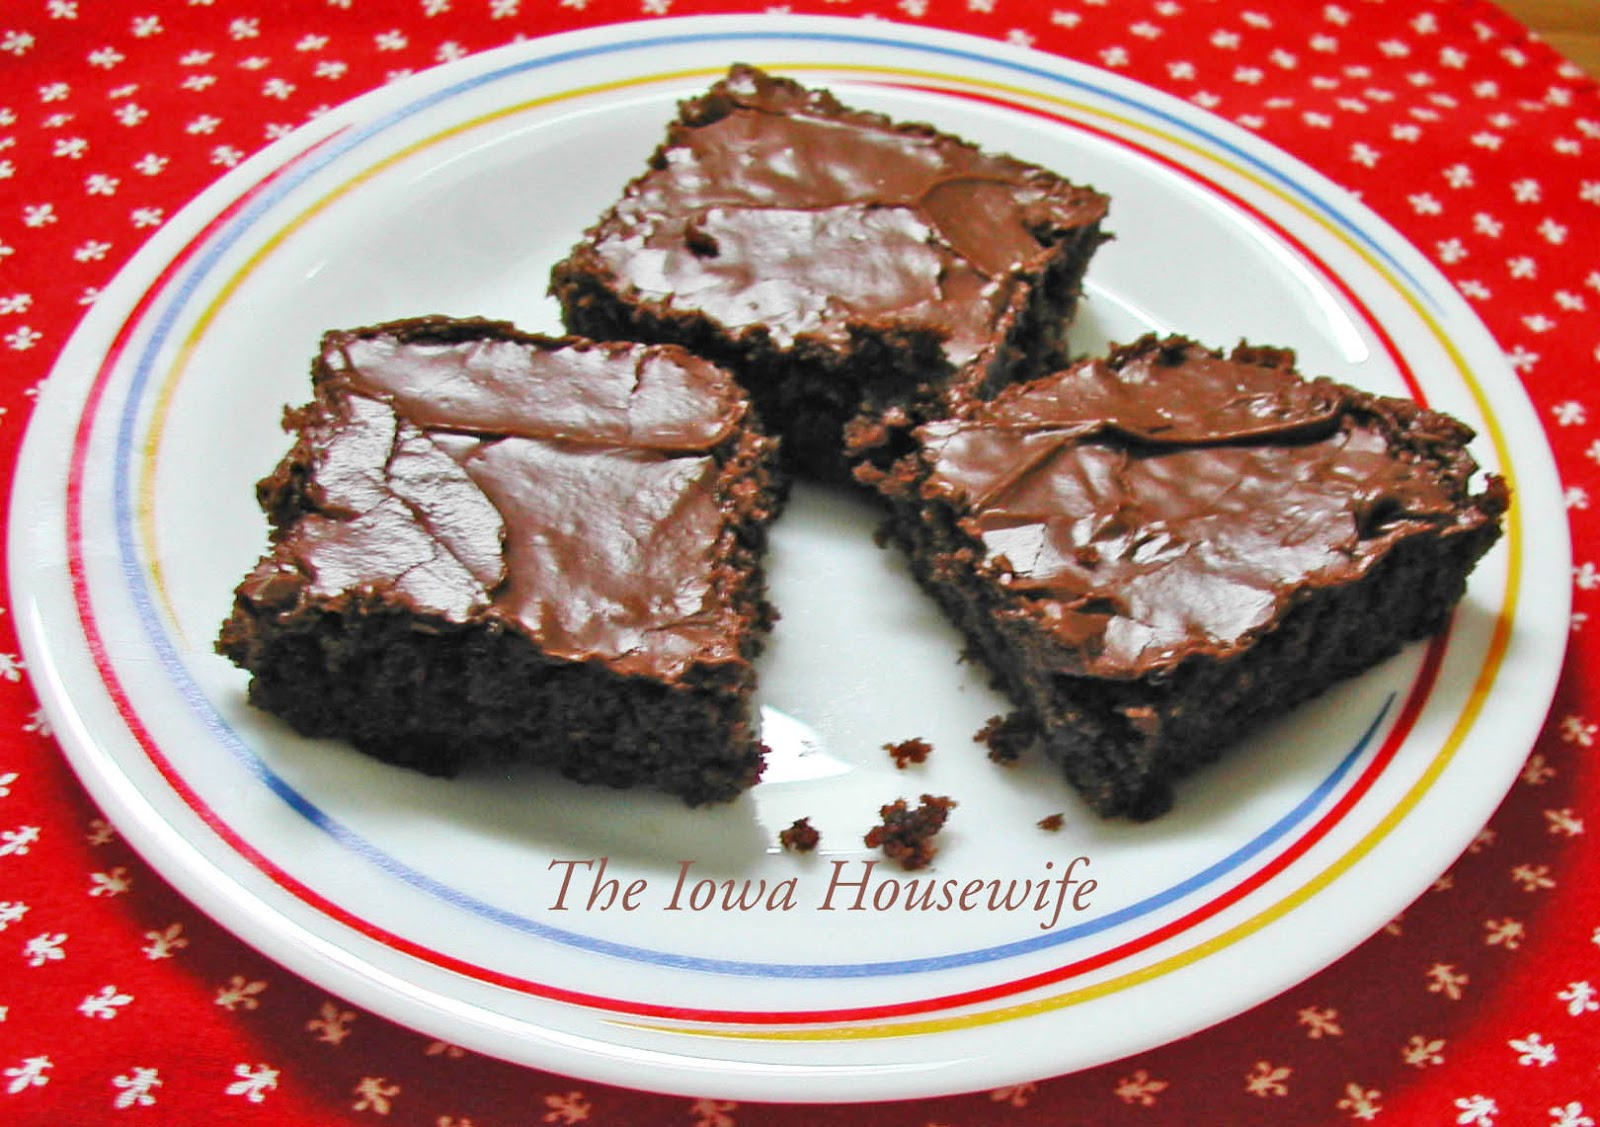 The Iowa Housewife: Hershey Syrup Brownies